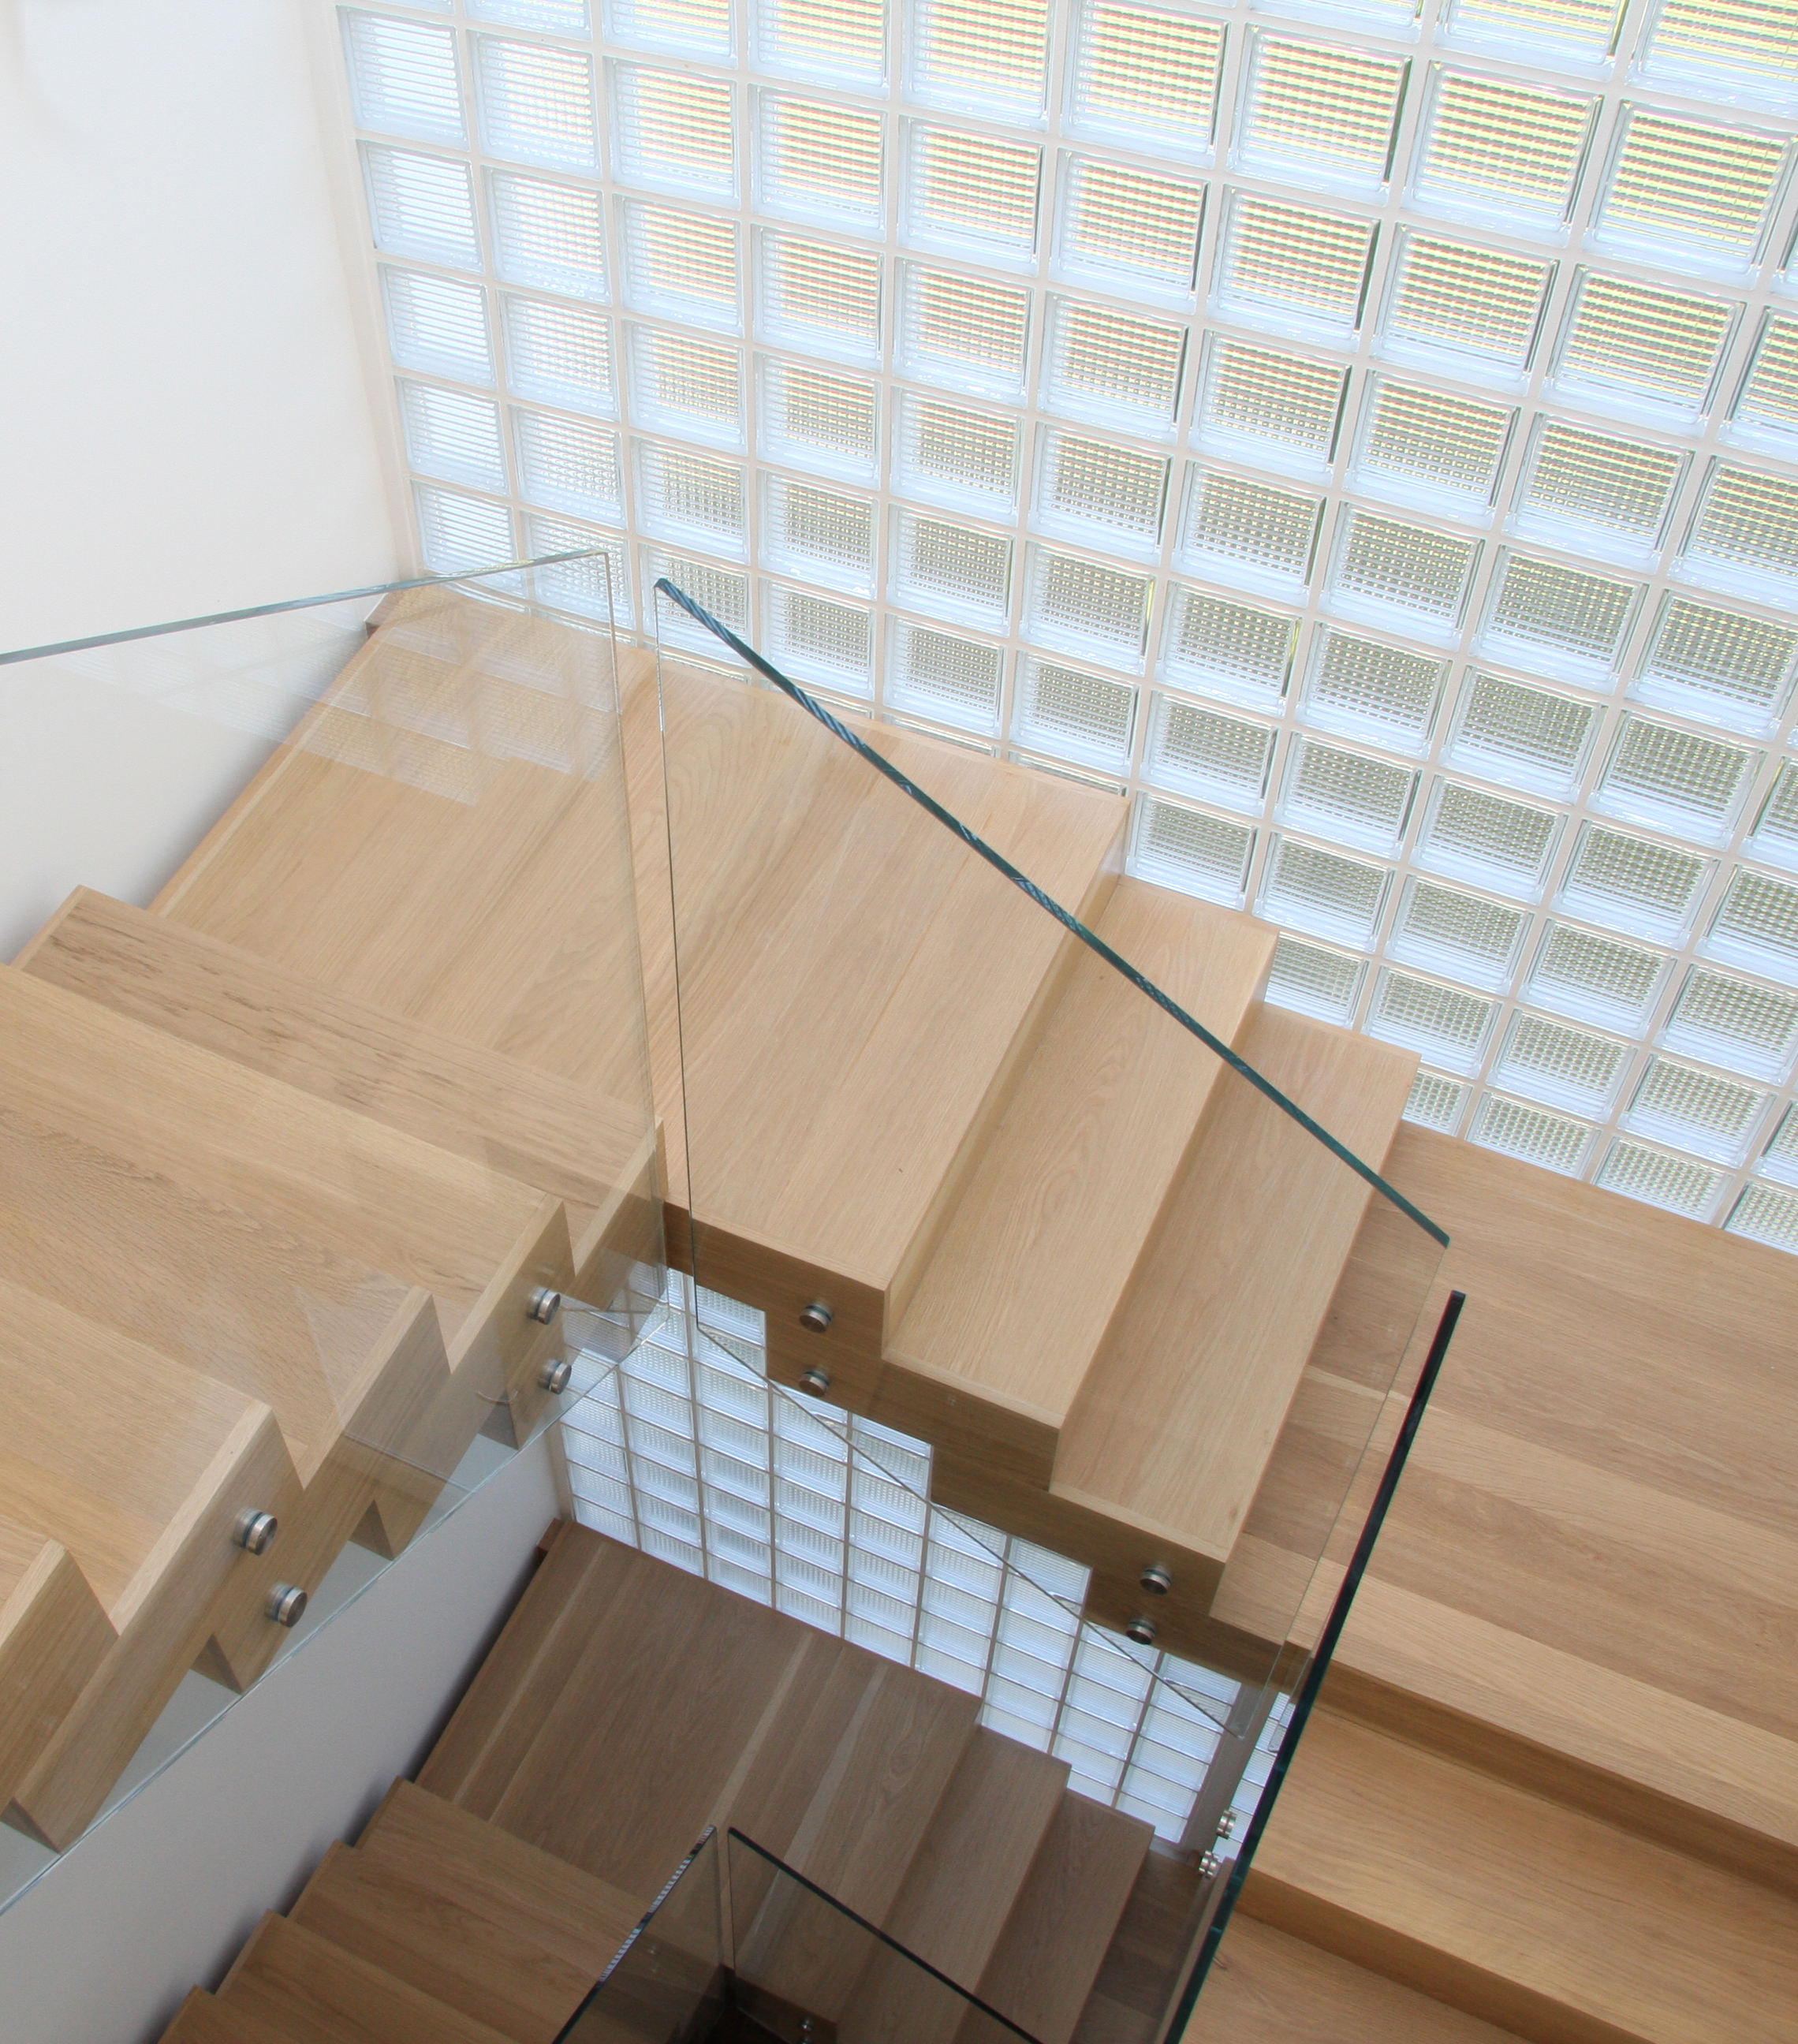 Pell-Stevens-Architects-miami-style-new-build-glass-brick-wall-stairwell.jpg